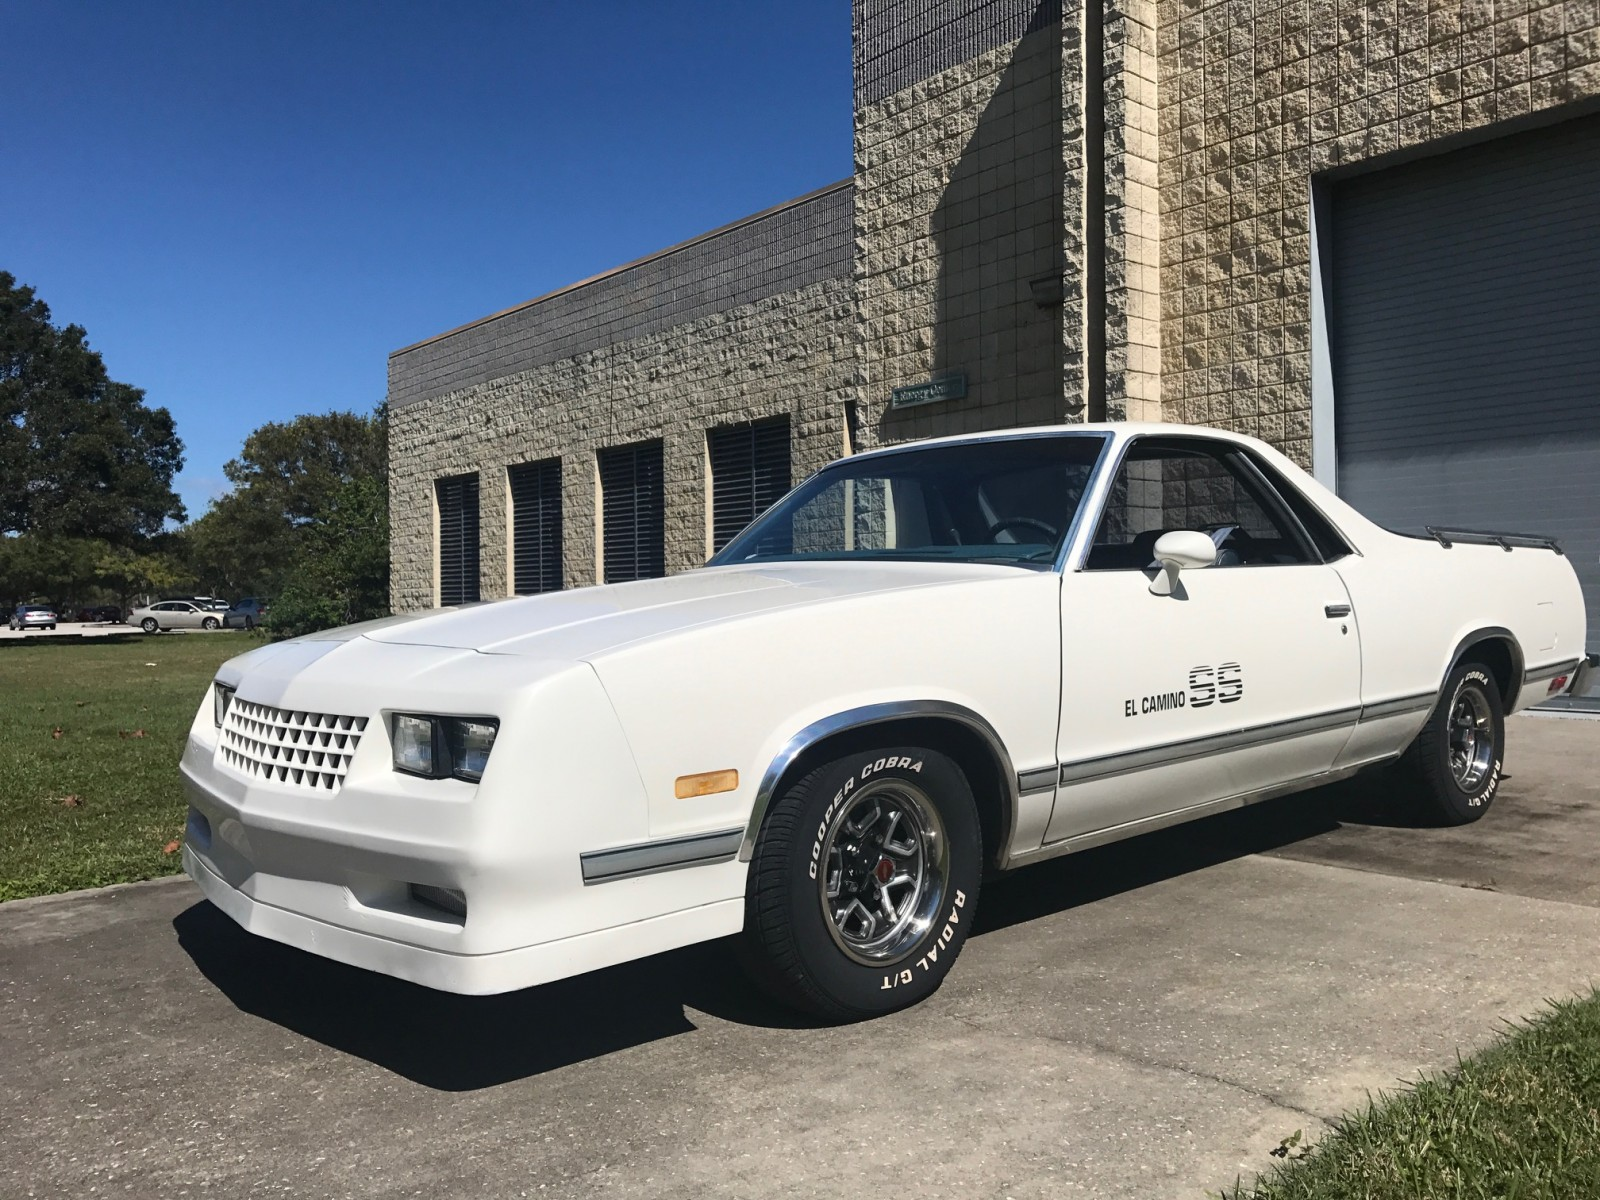 IMG_5539 Take A Look About 1980 Monte Carlo for Sale with Mesmerizing Photos Cars Review